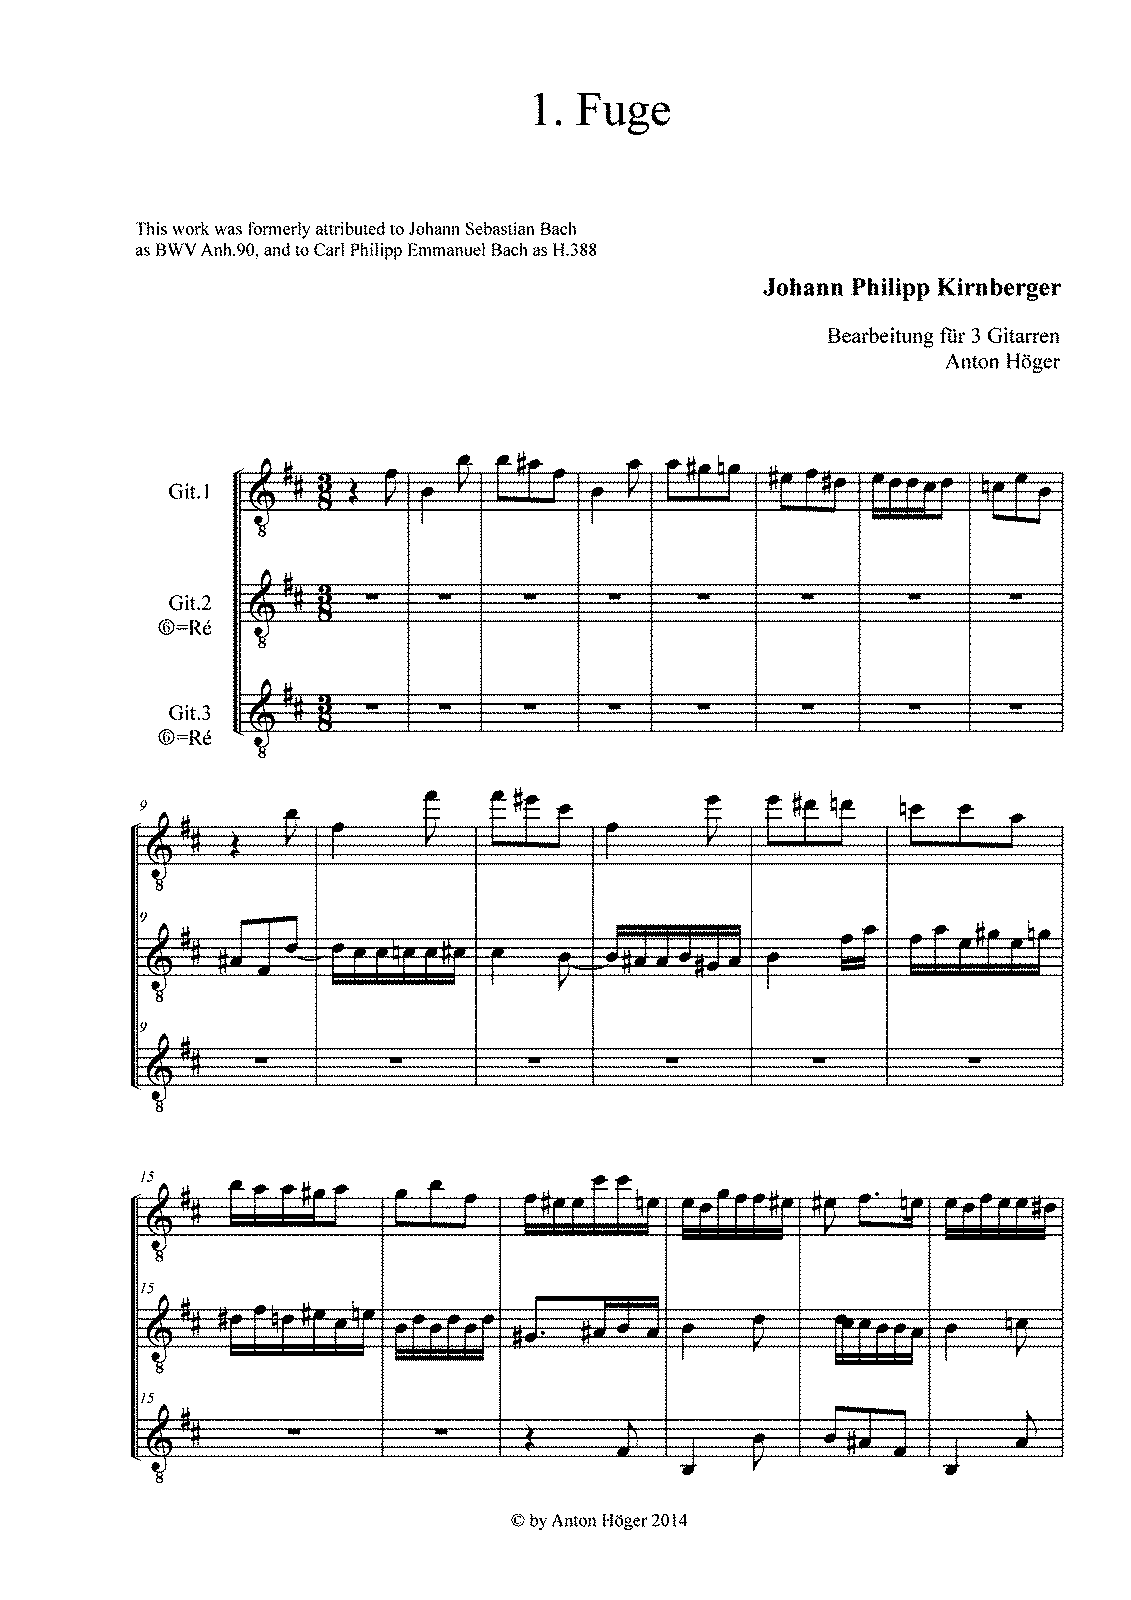 PMLP187165-Kirnberger, Johann Philipp - Fugue in E minor (BWV Anh 094).pdf